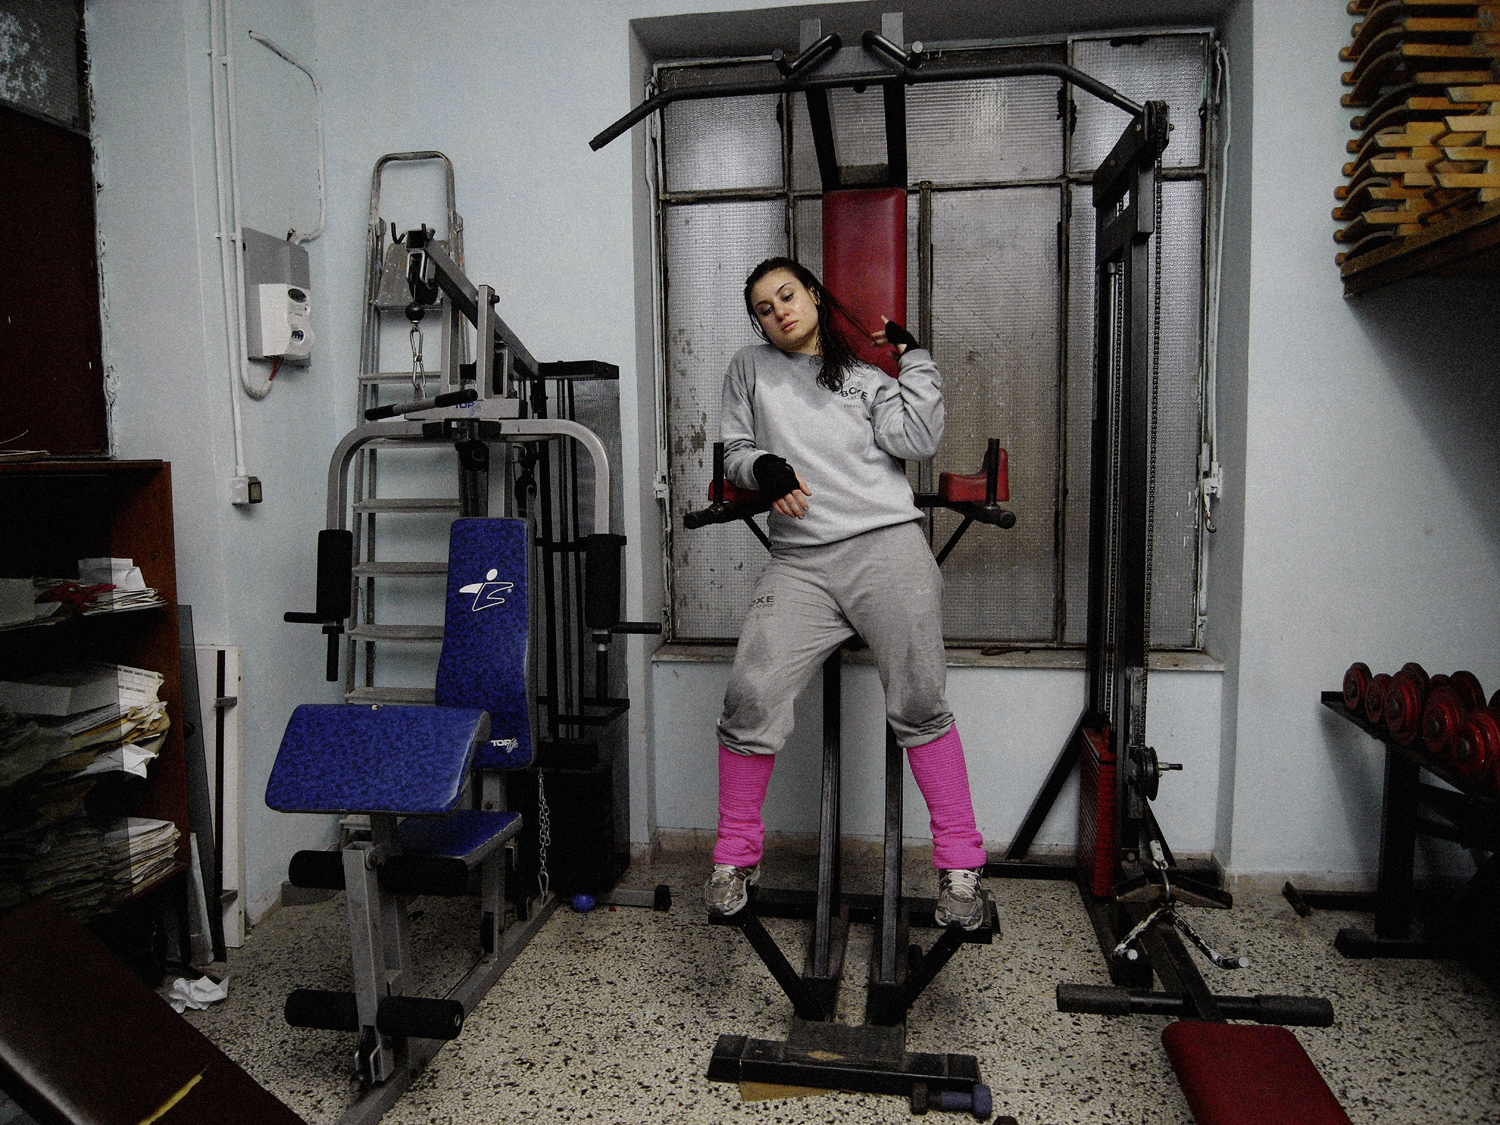 Excelsior Boxing Gym, Marcianise, Caserta. Italian boxing champion Viviana, 18 years old.